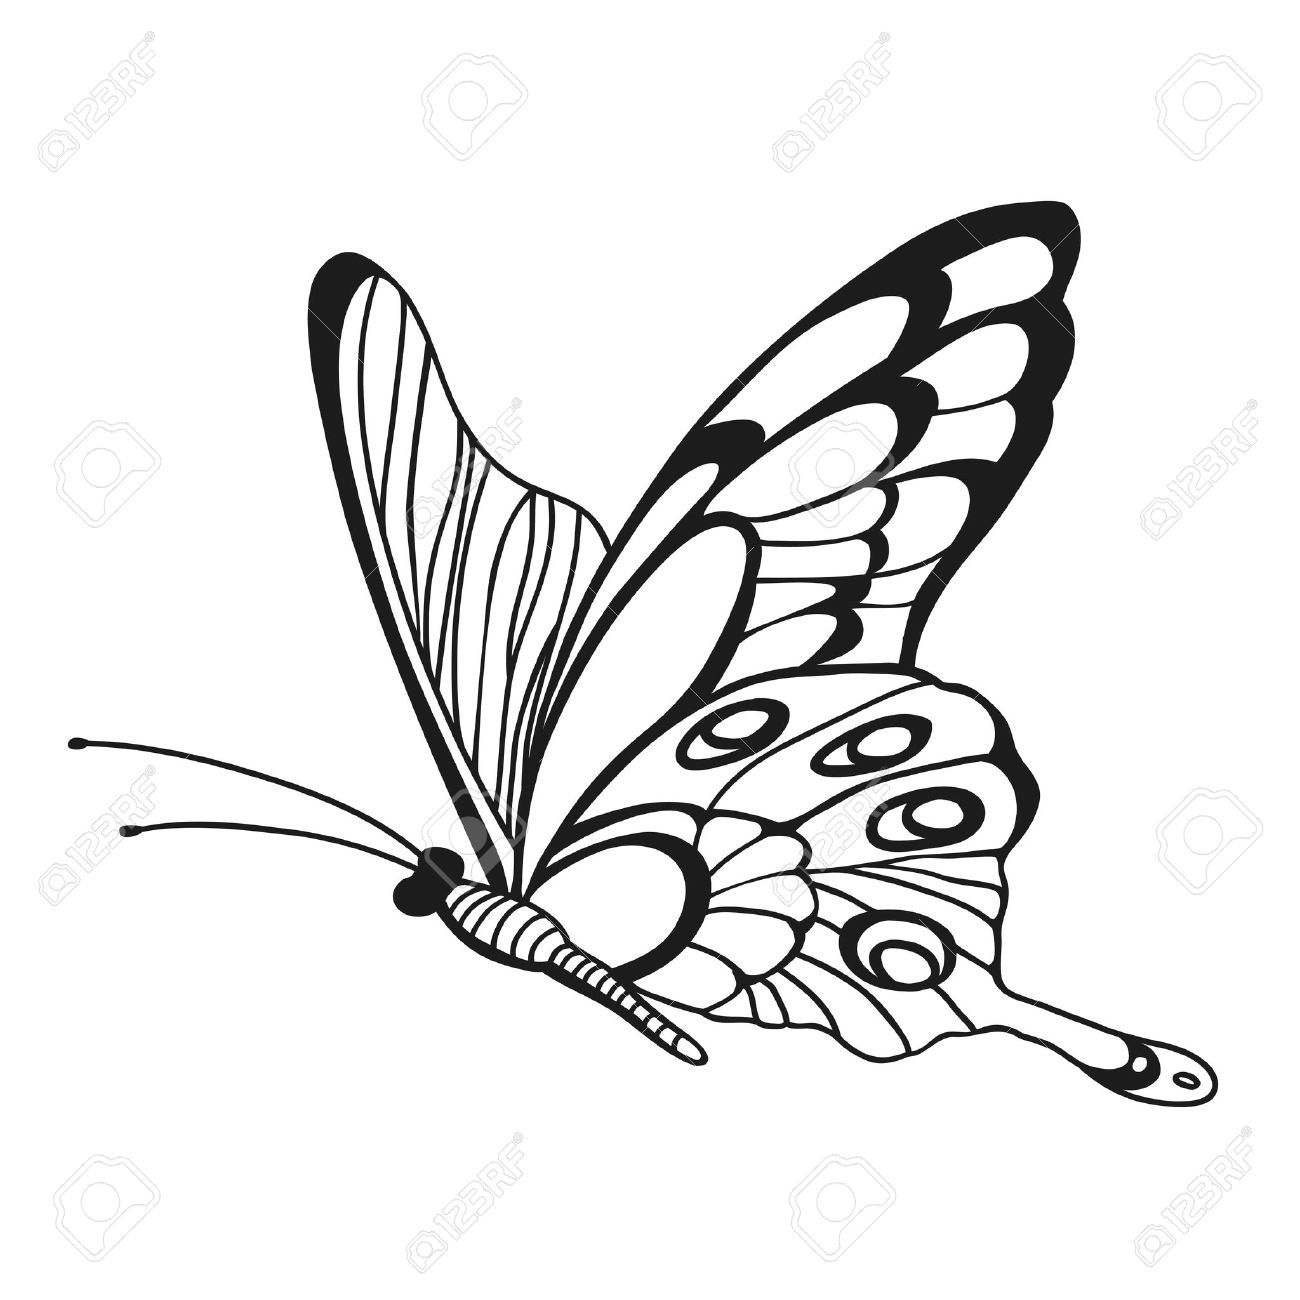 Beautiful monochrome butterfly sketch of insect for design and scrapbooking stock vector 39349175